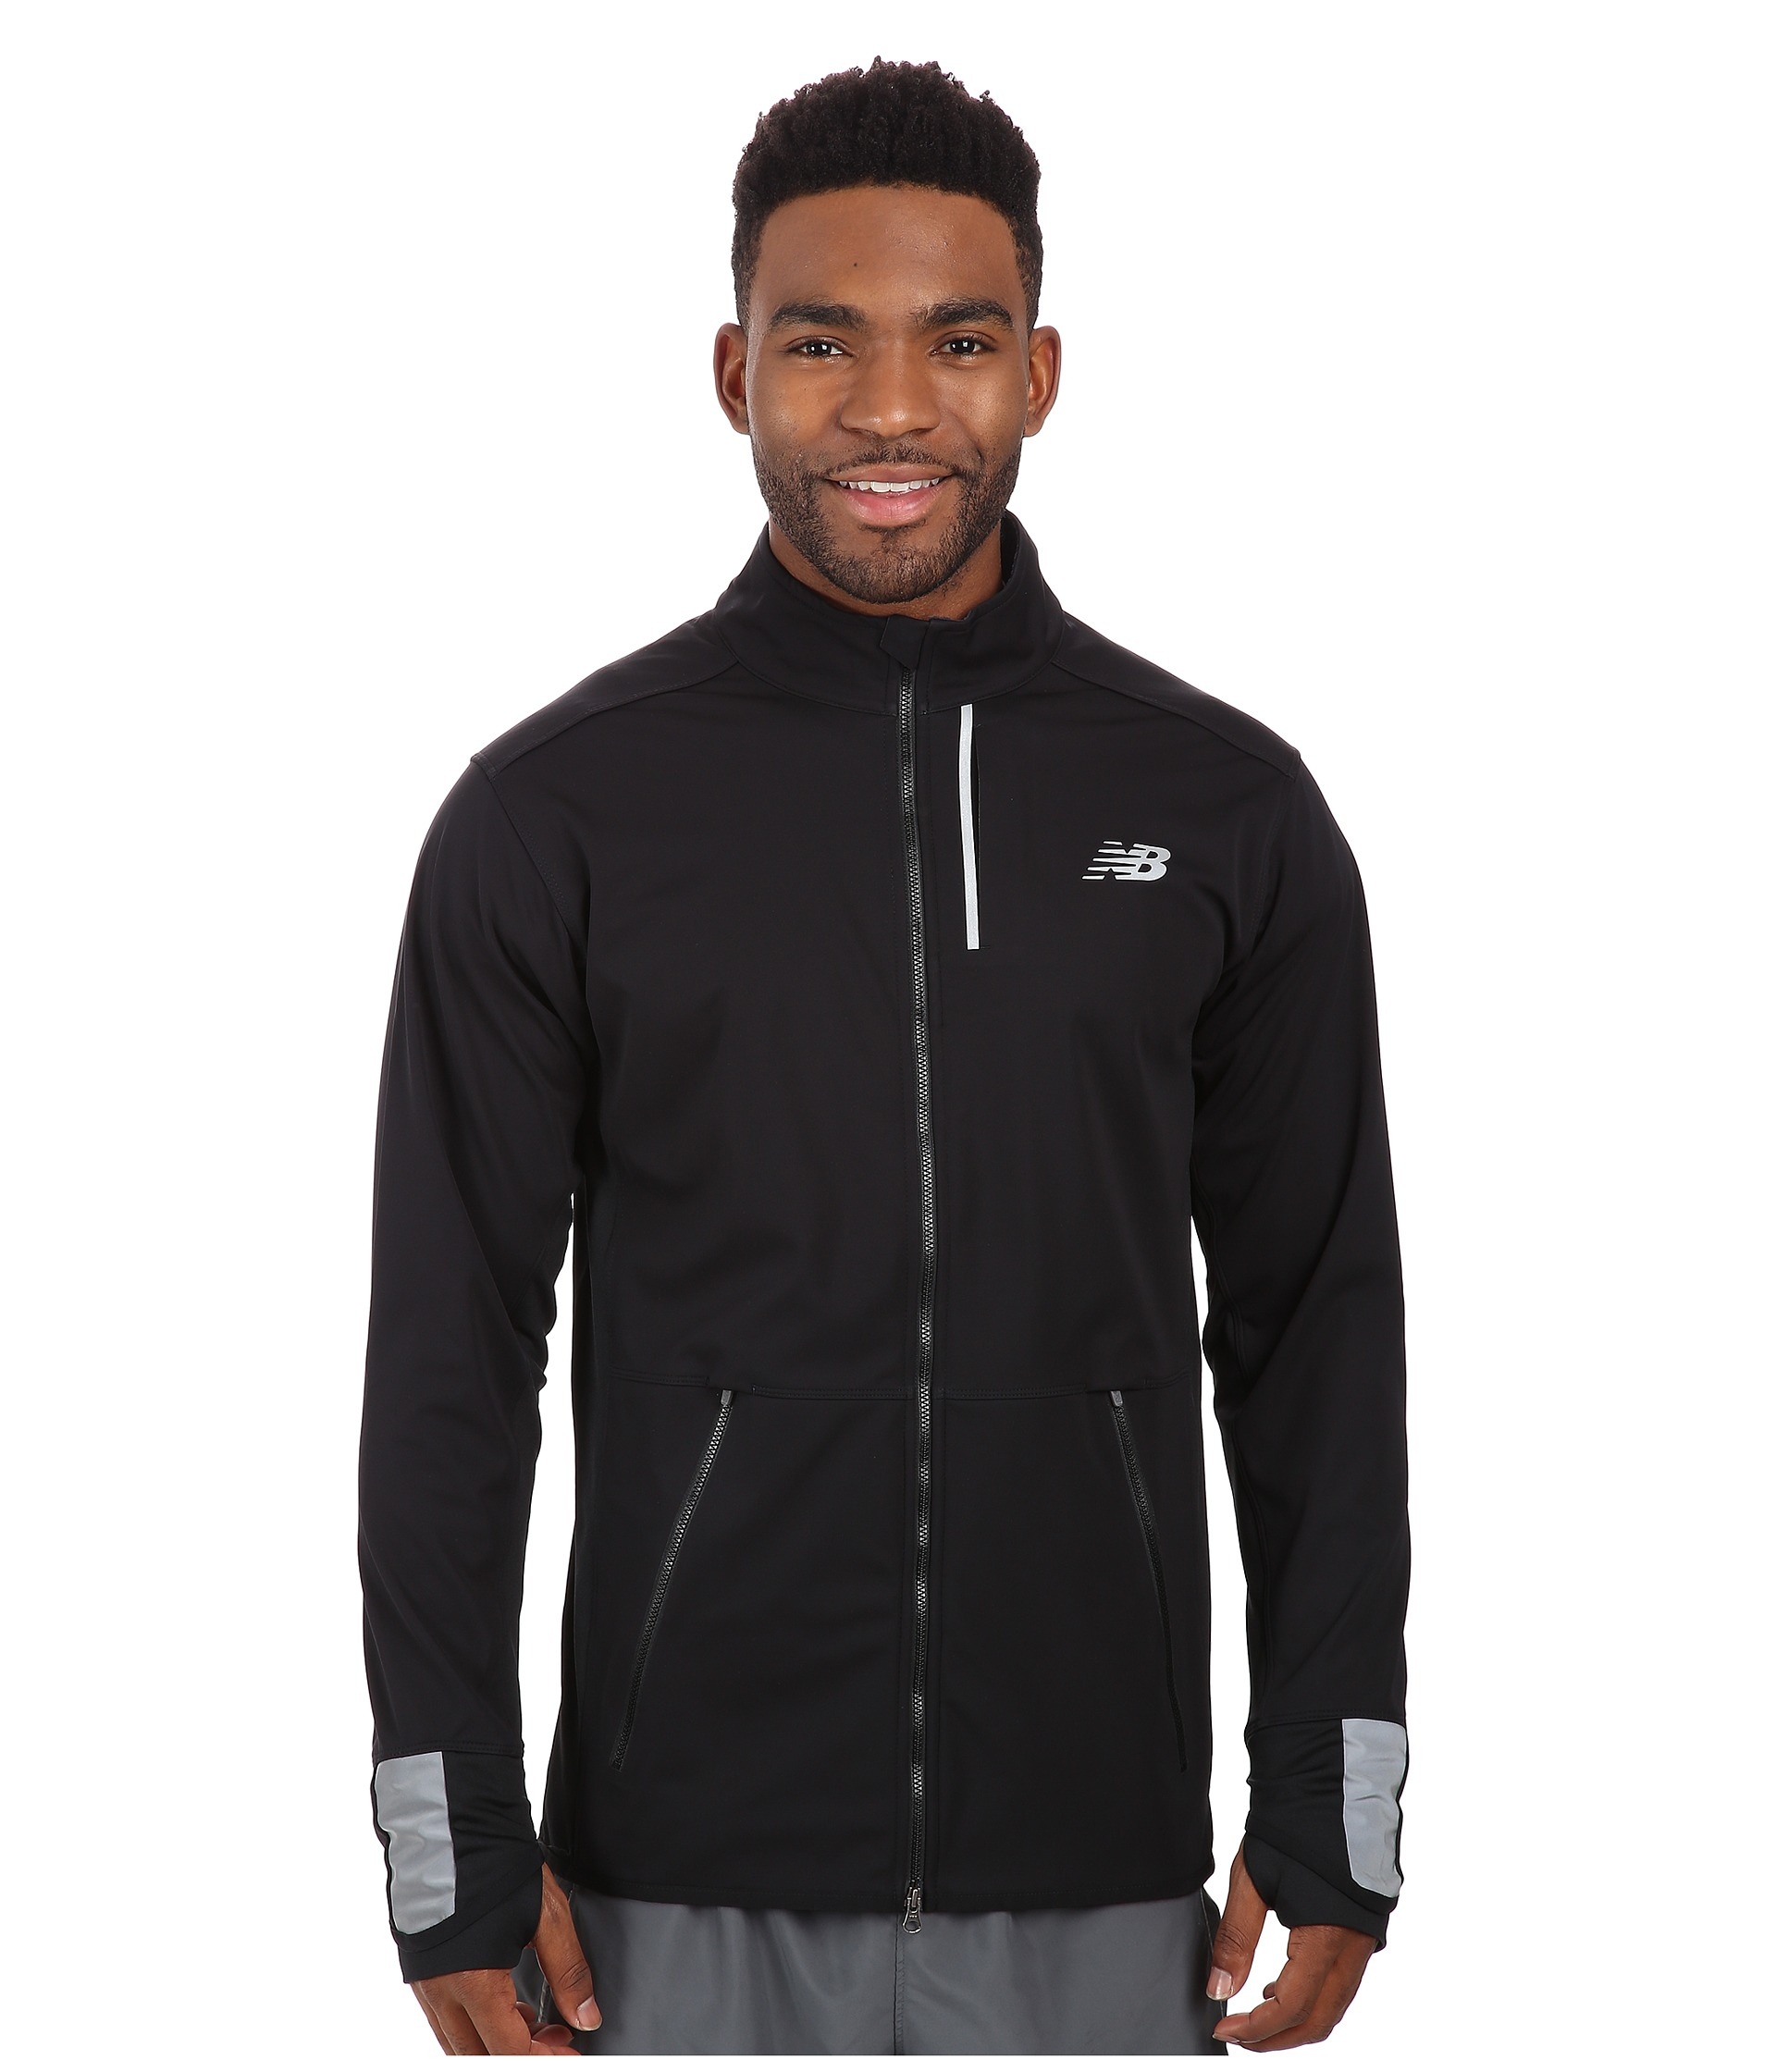 5411751705e0e New Balance Windblocker Jacket in Black for Men - Lyst